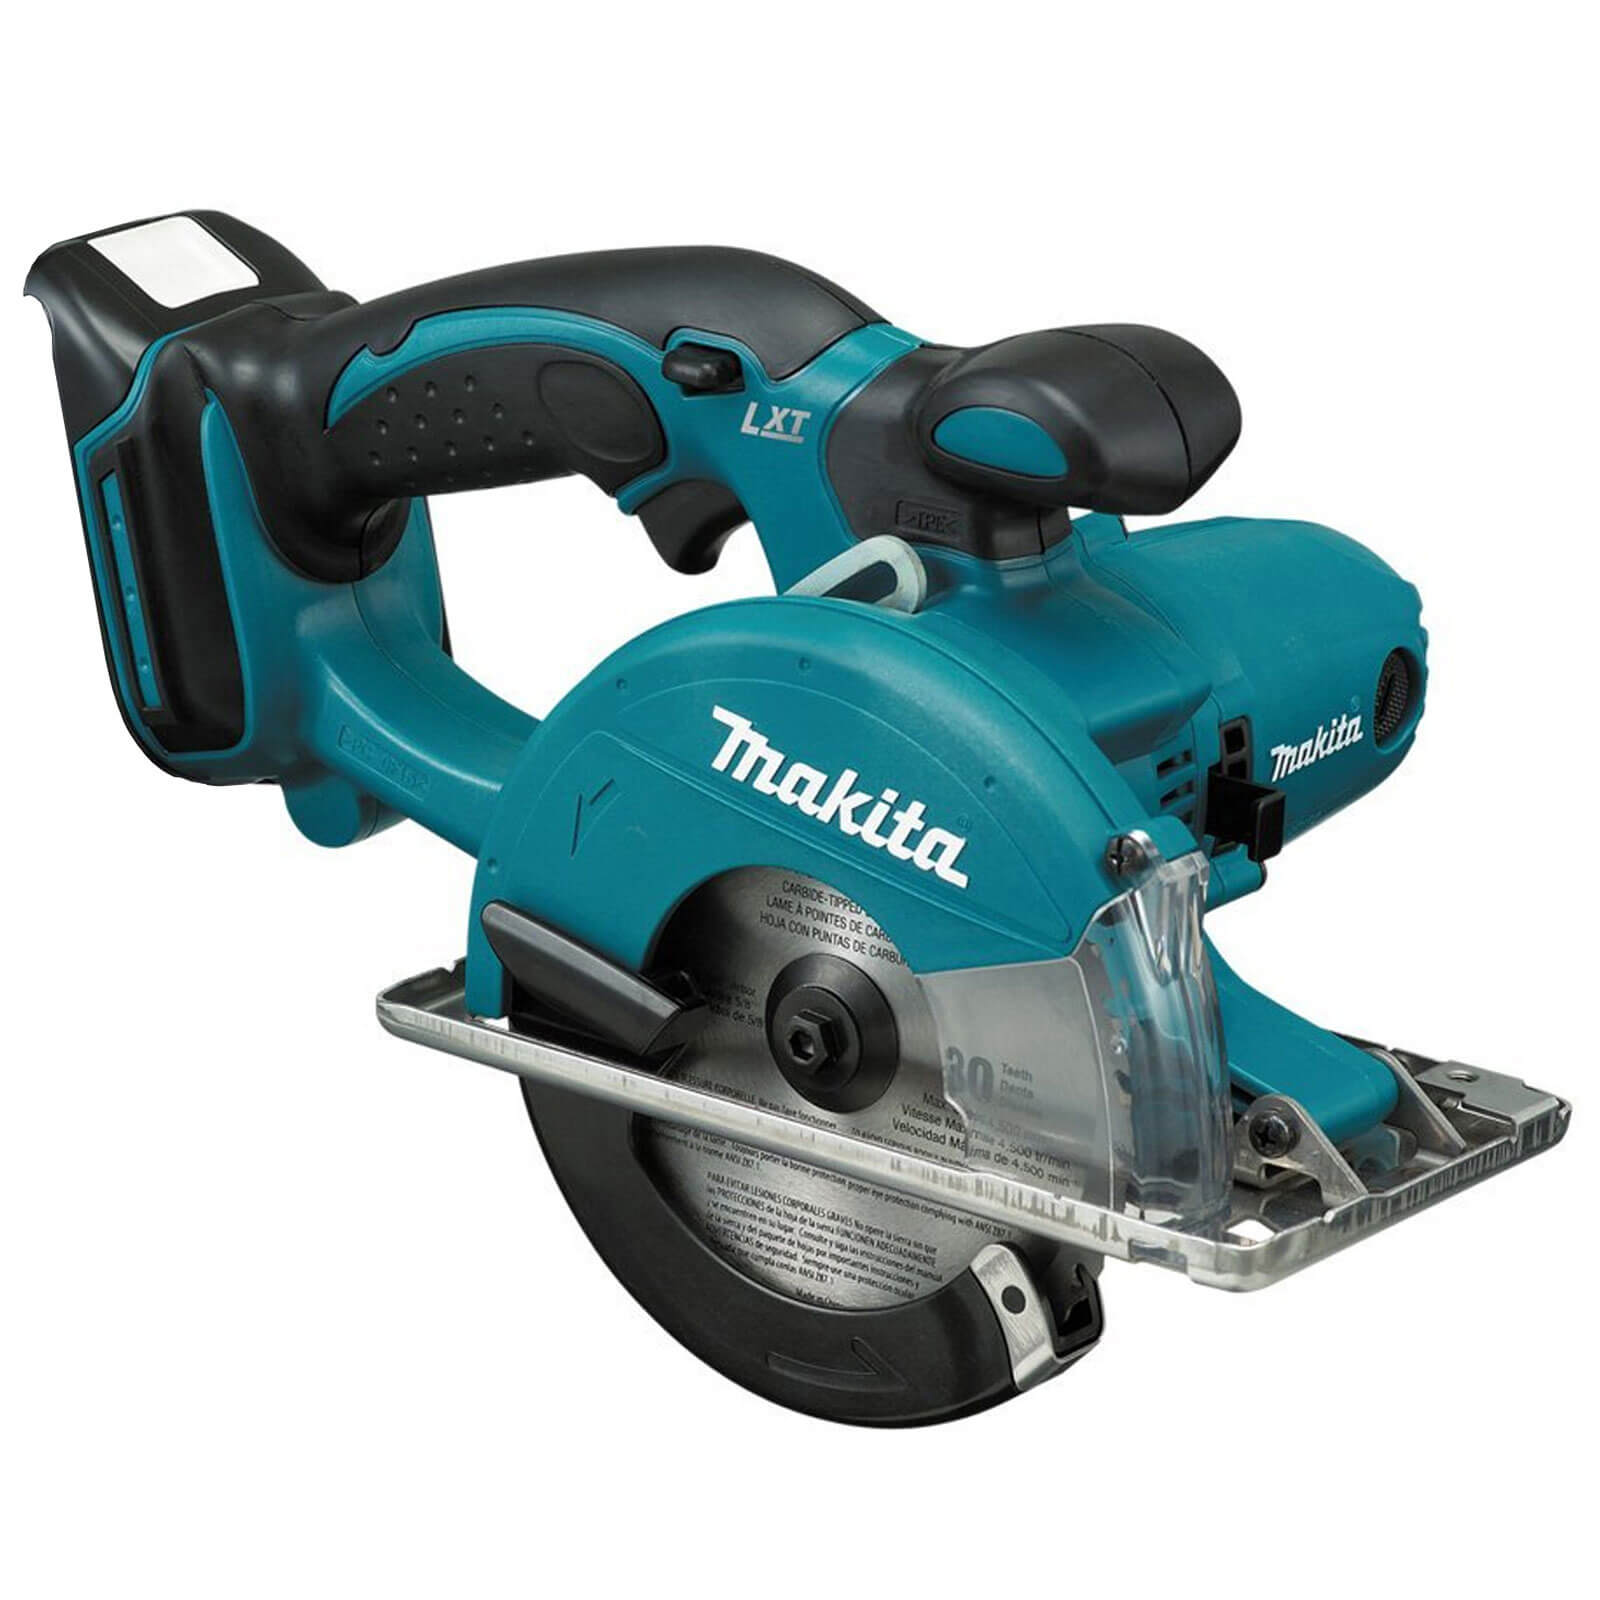 Image of Makita BCS550Z LXT 18v Cordless Metal Cutting Saw 136mm Blade without Battery Or Charger